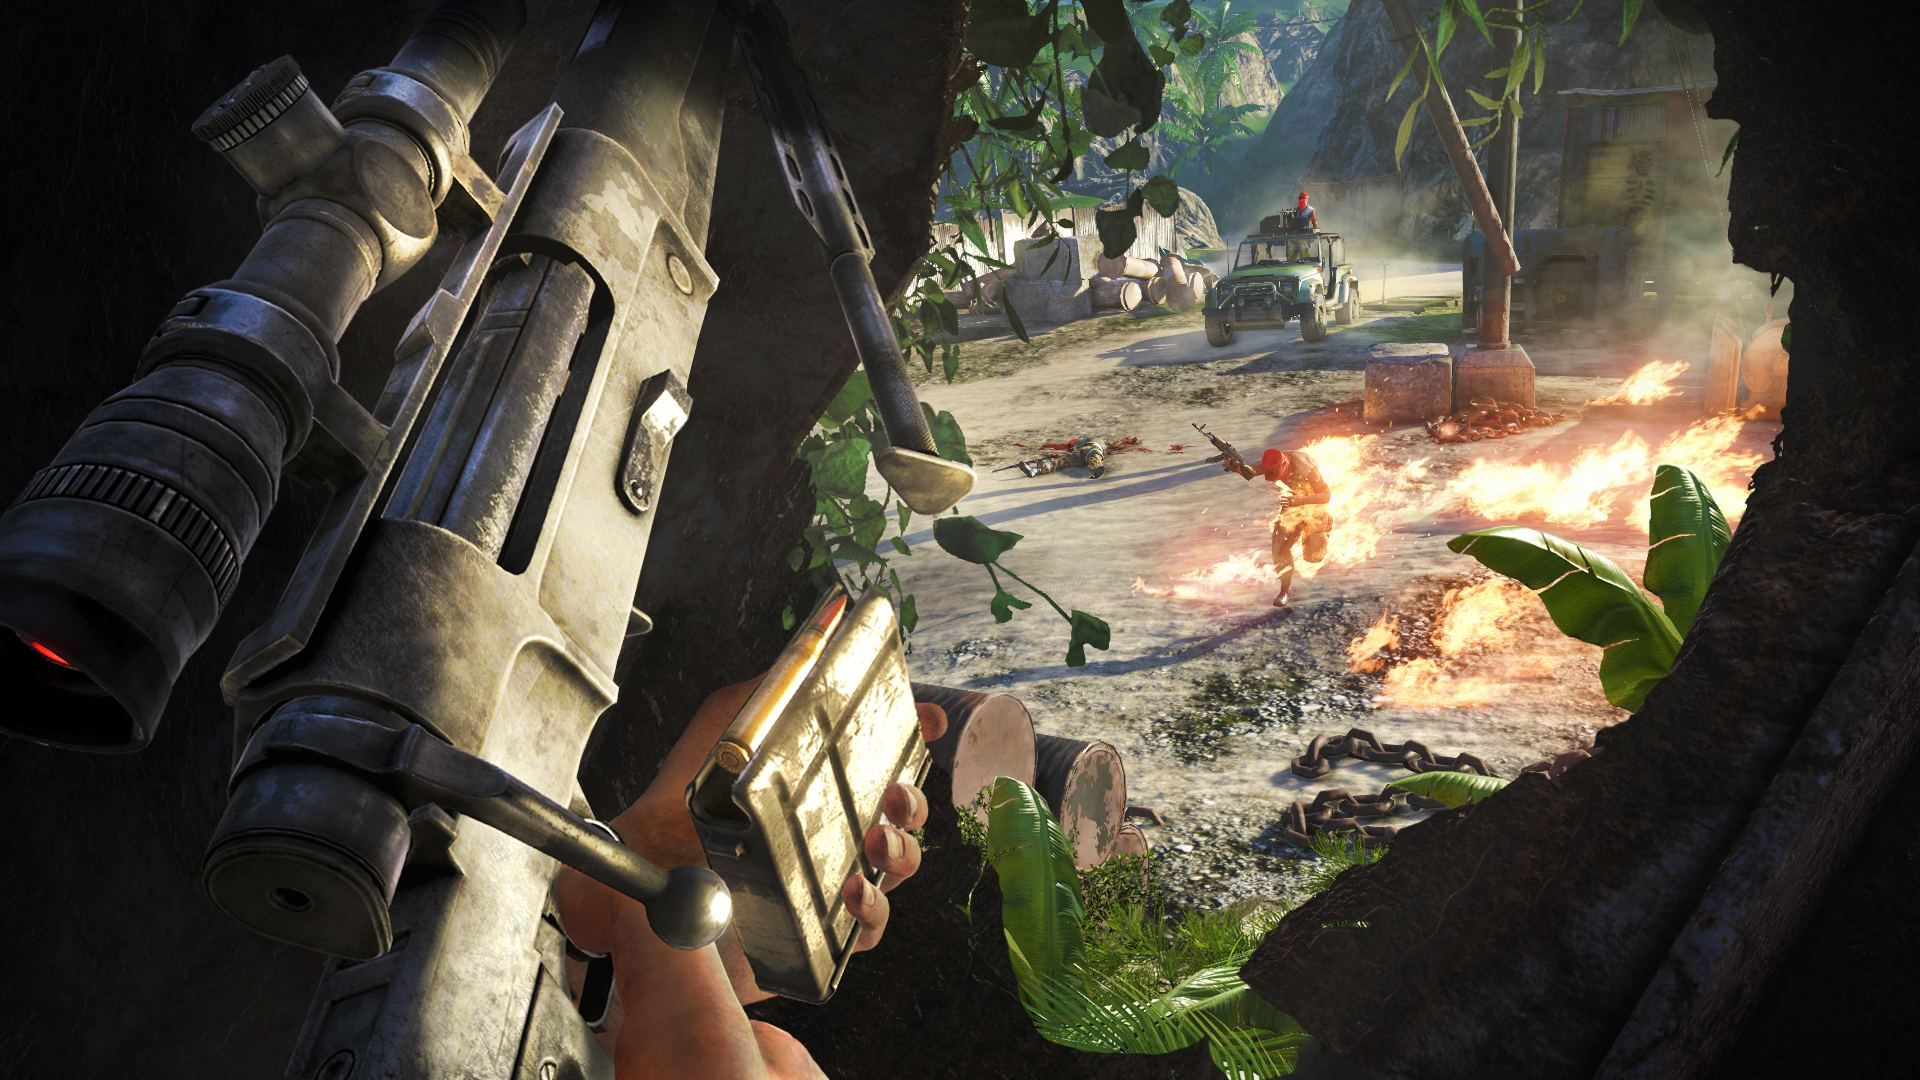 Far Cry 3 Official Website Official Screenshots Ubisoft Far Cry 3 Desktop Pictures Background